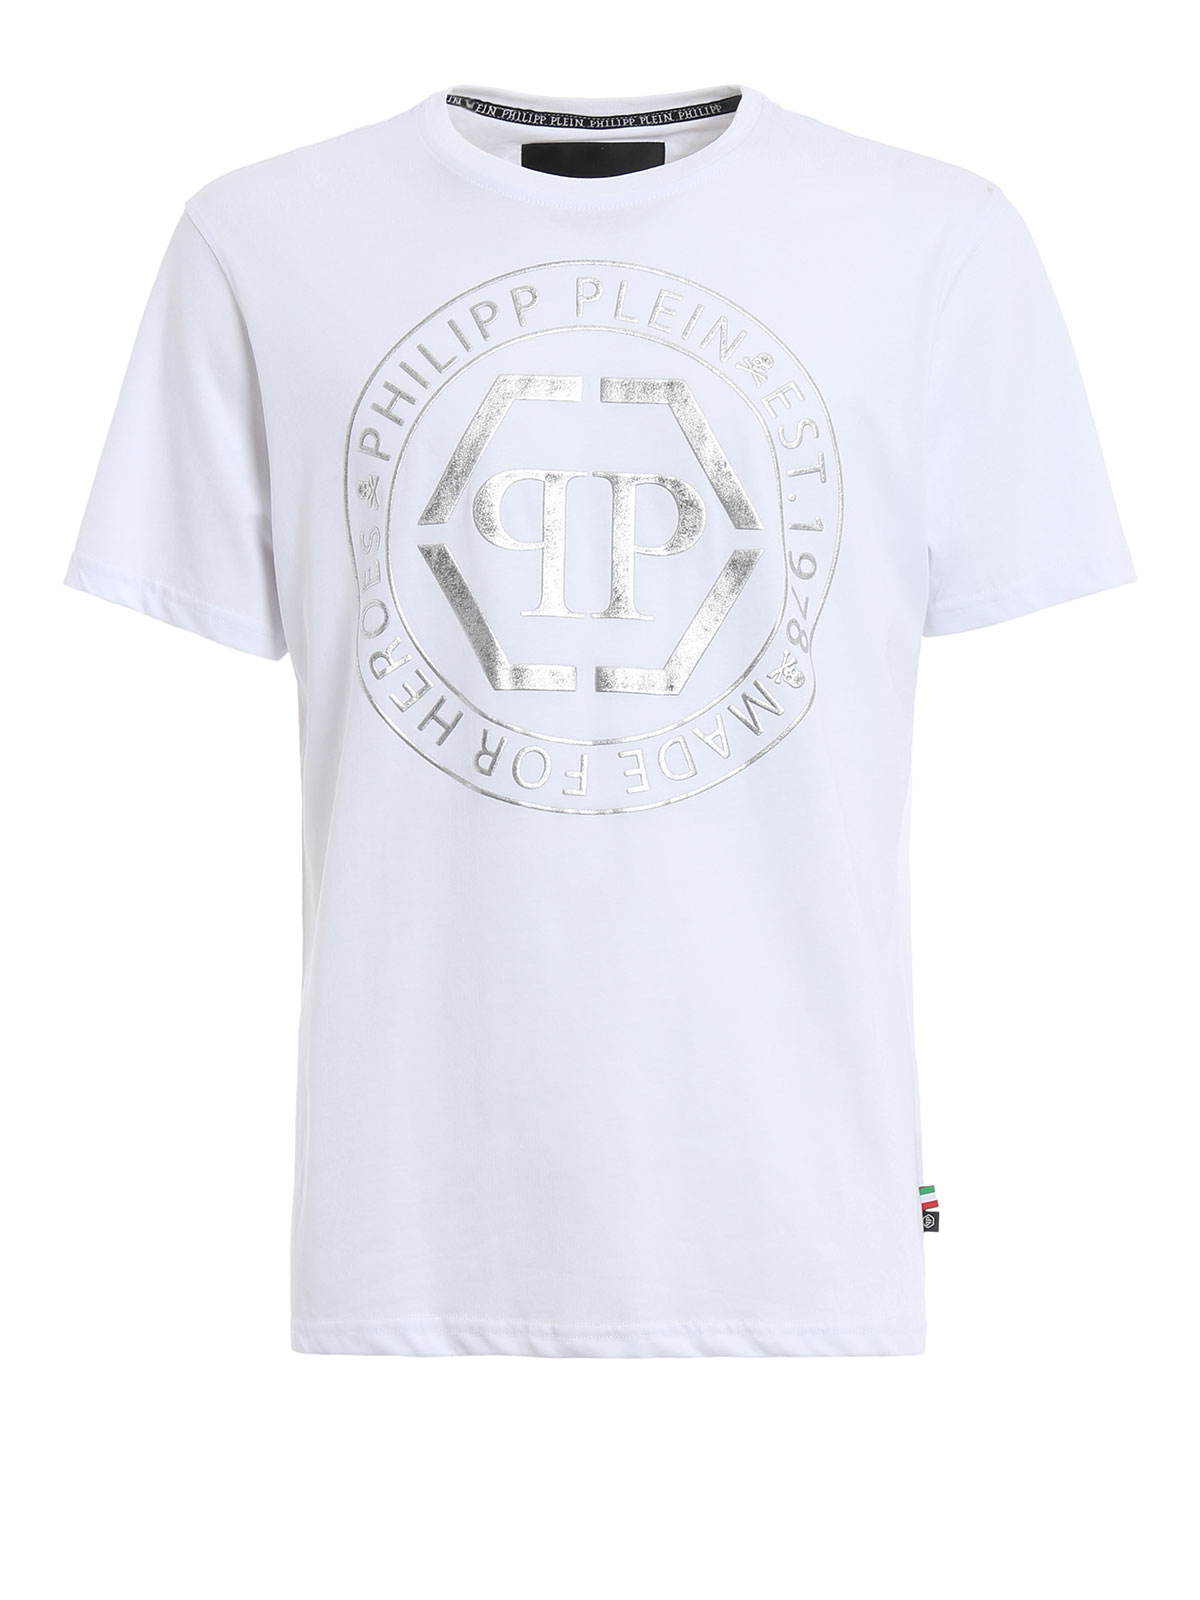 teruyo printed cotton t shirt by philipp plein t shirts ikrix. Black Bedroom Furniture Sets. Home Design Ideas